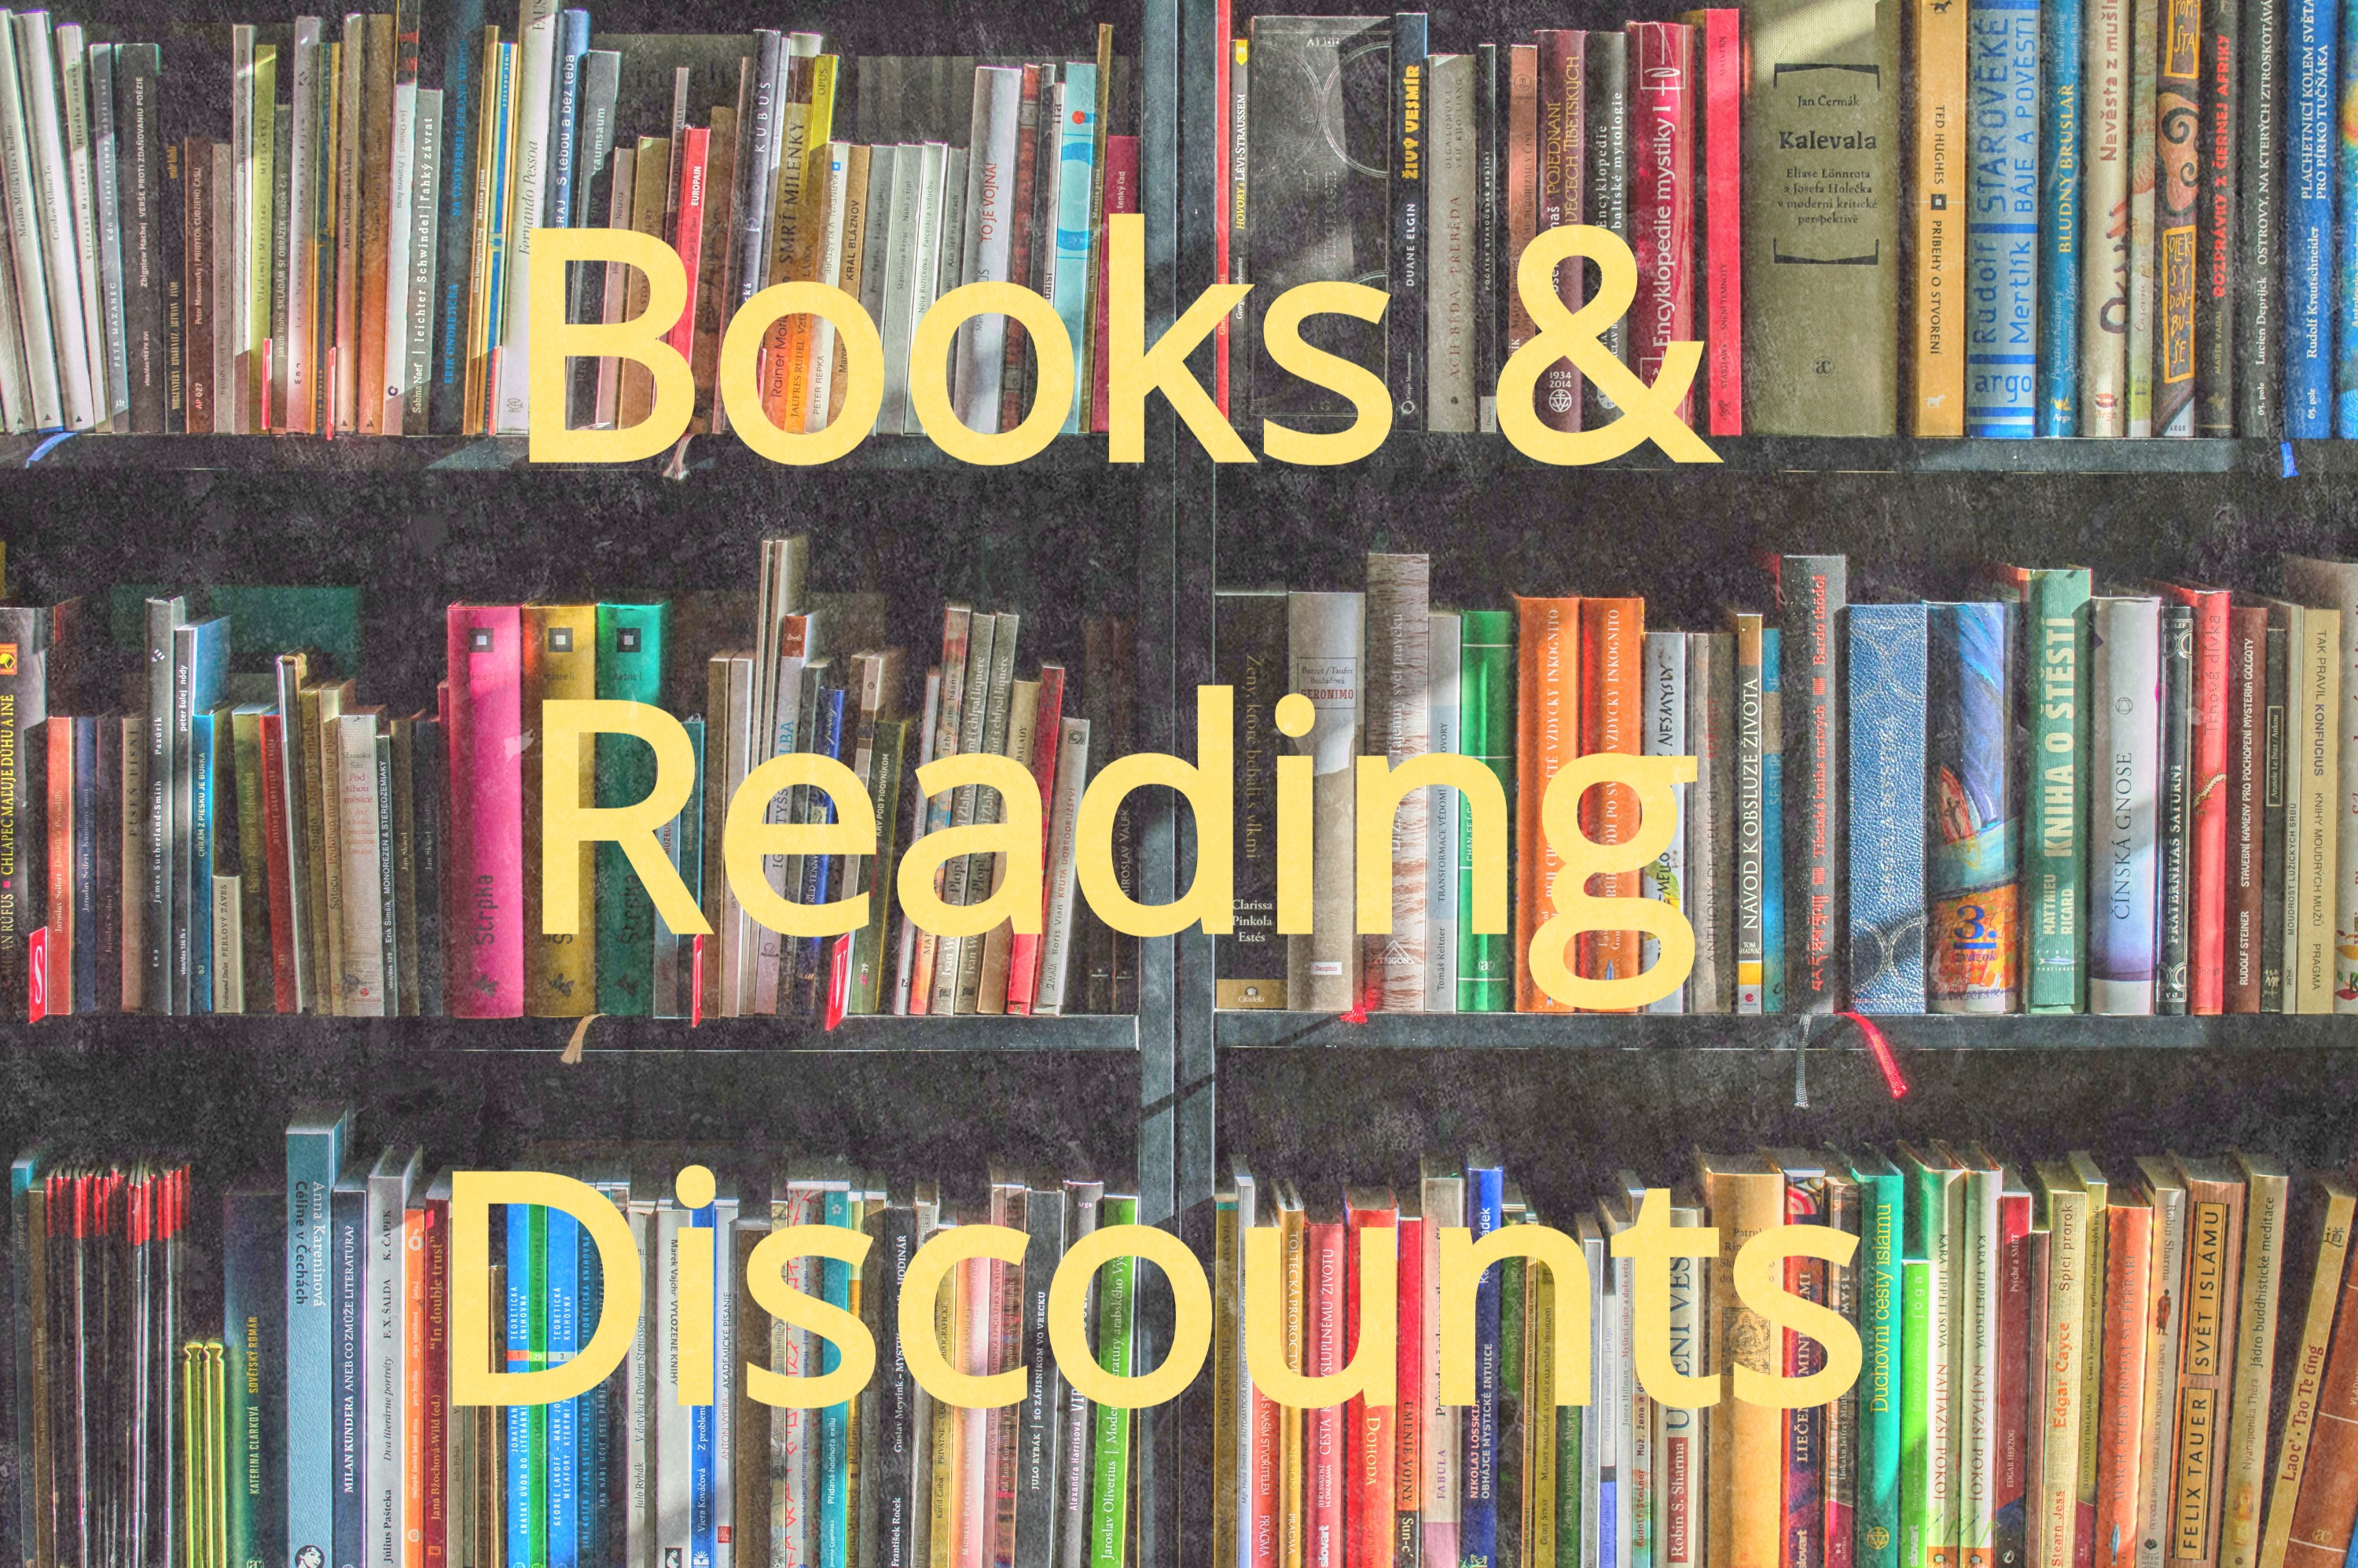 Books & Reading discounts